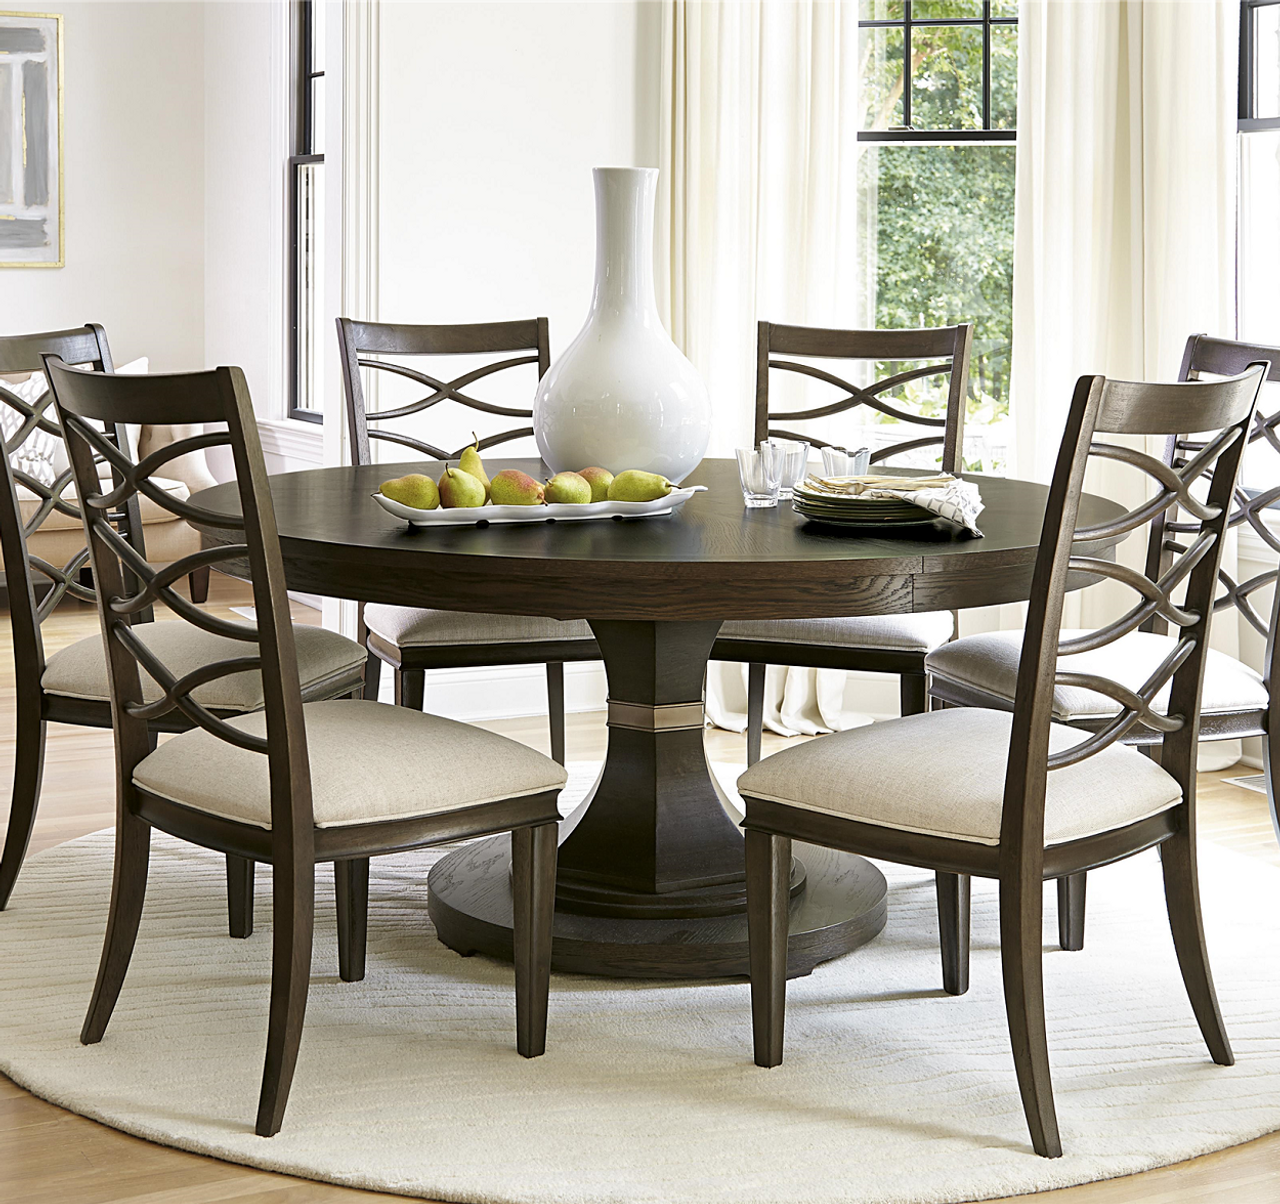 California Rustic Oak Expandable Round Dining Table 64""